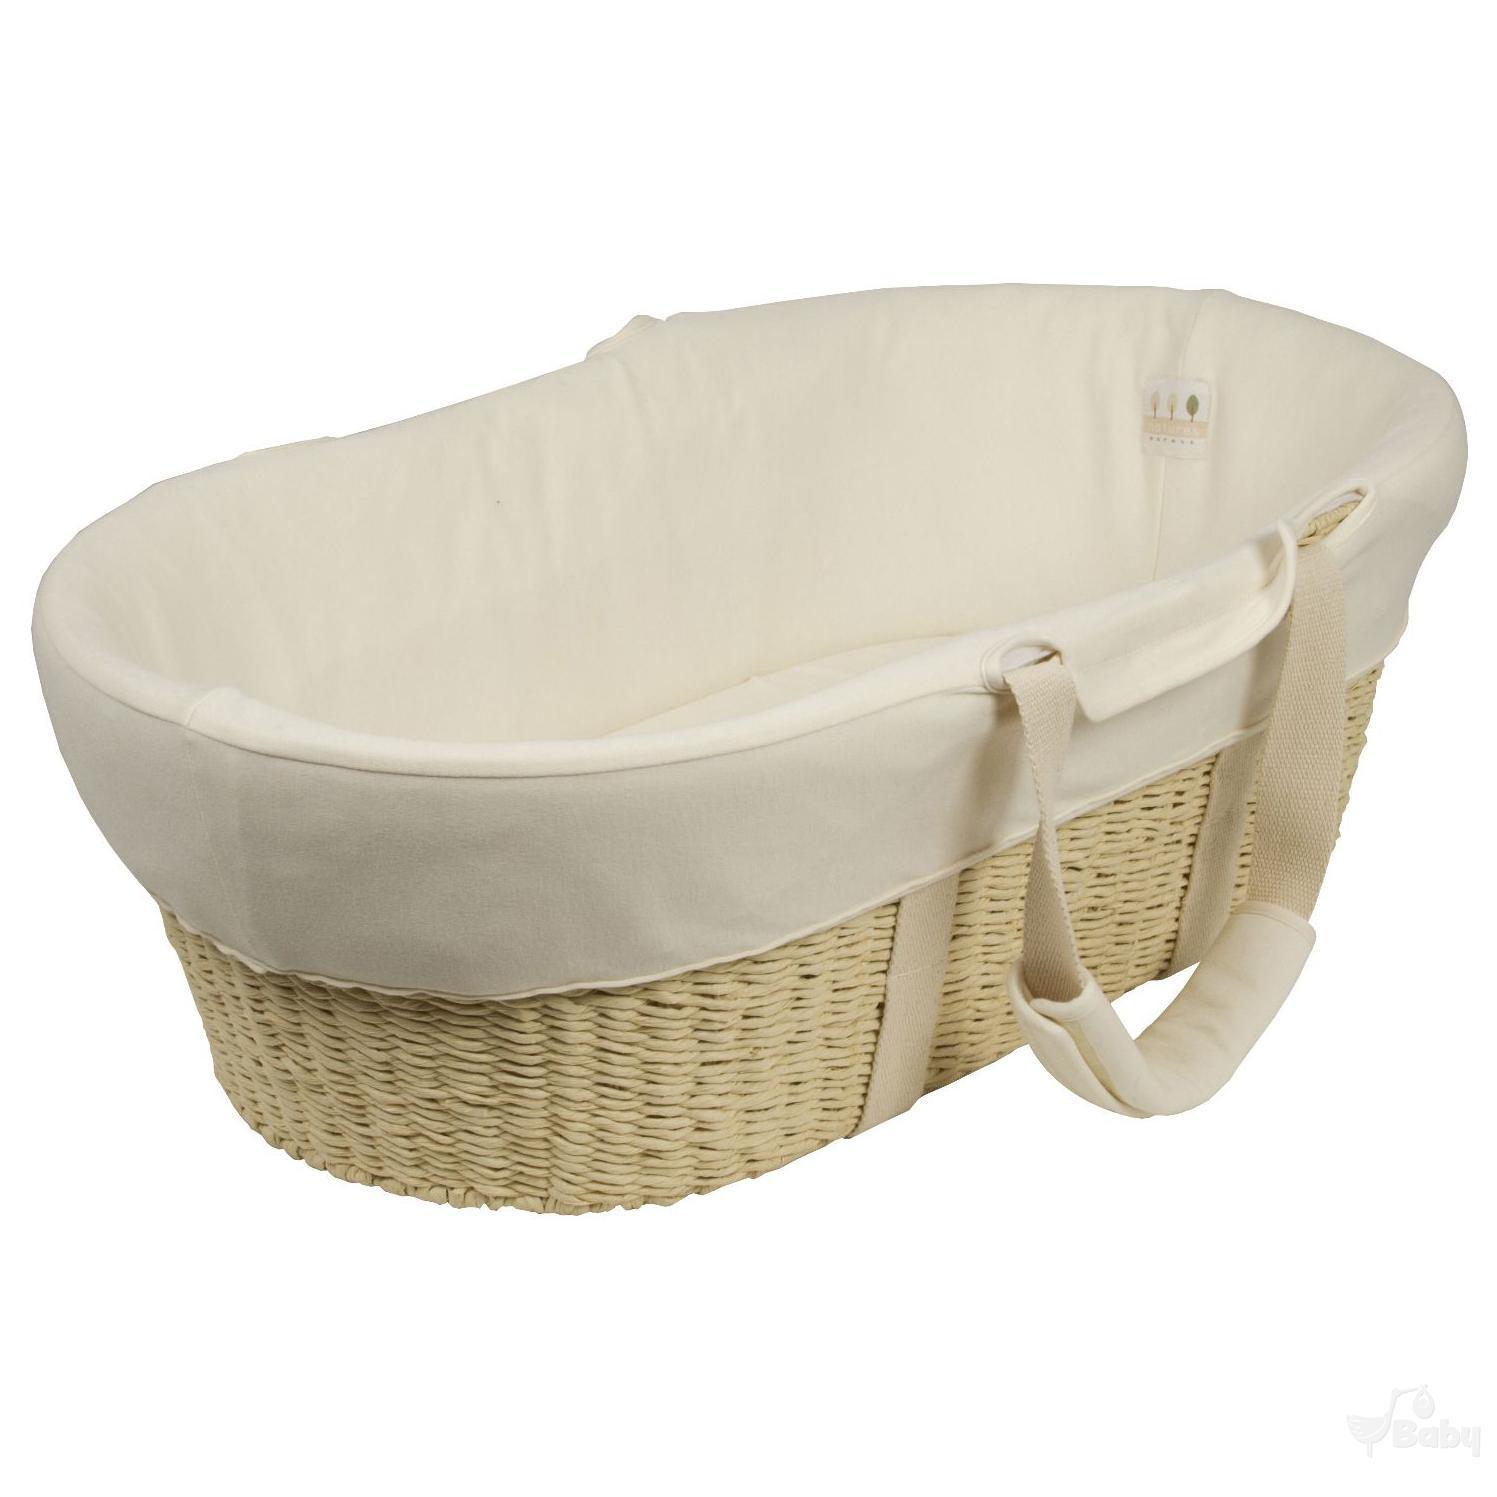 Bebe Care: Moses Basket image